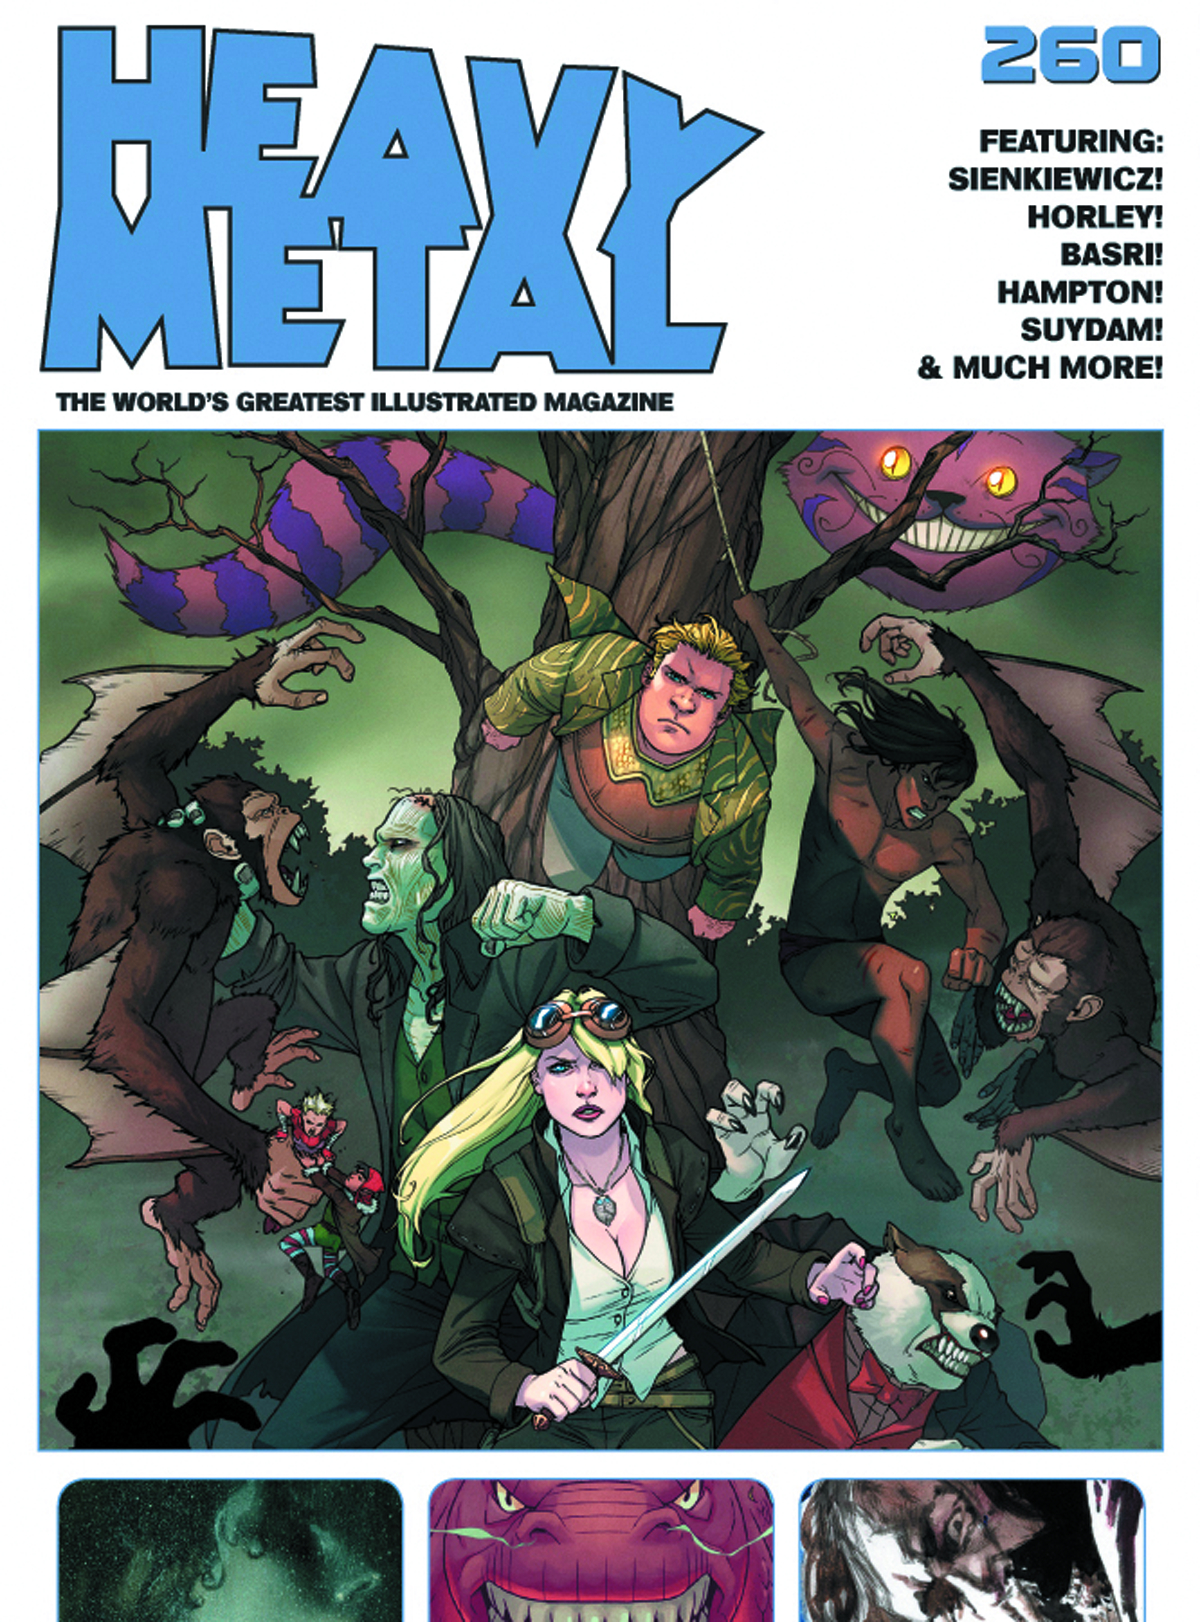 HEAVY METAL #260